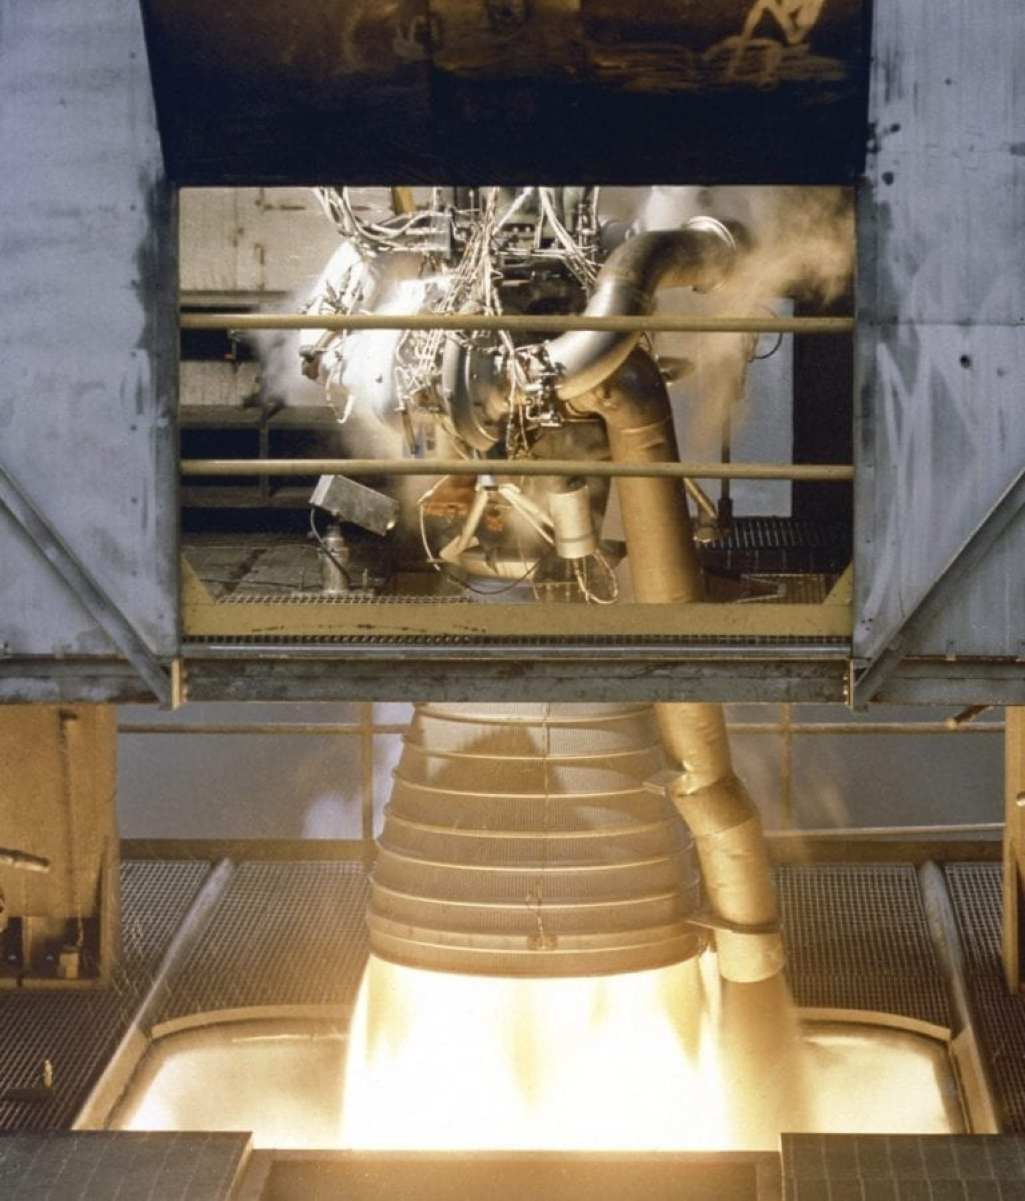 Designed and developed by Rocketdye under the direction of the Marshall Space Flight Center, the engine measured 19-feet tall by 12.5 feet at the nozzle exit, and each engine produced a 1,500,000-pound thrust using liquid oxygen and kerosene as the propellant. A cluster of five F-1 engines was mounted on the Saturn V S-IC (first) stage and burned 15 tons of liquid oxygen and kerosene each second to produce 7,500,000 pounds of thrust.